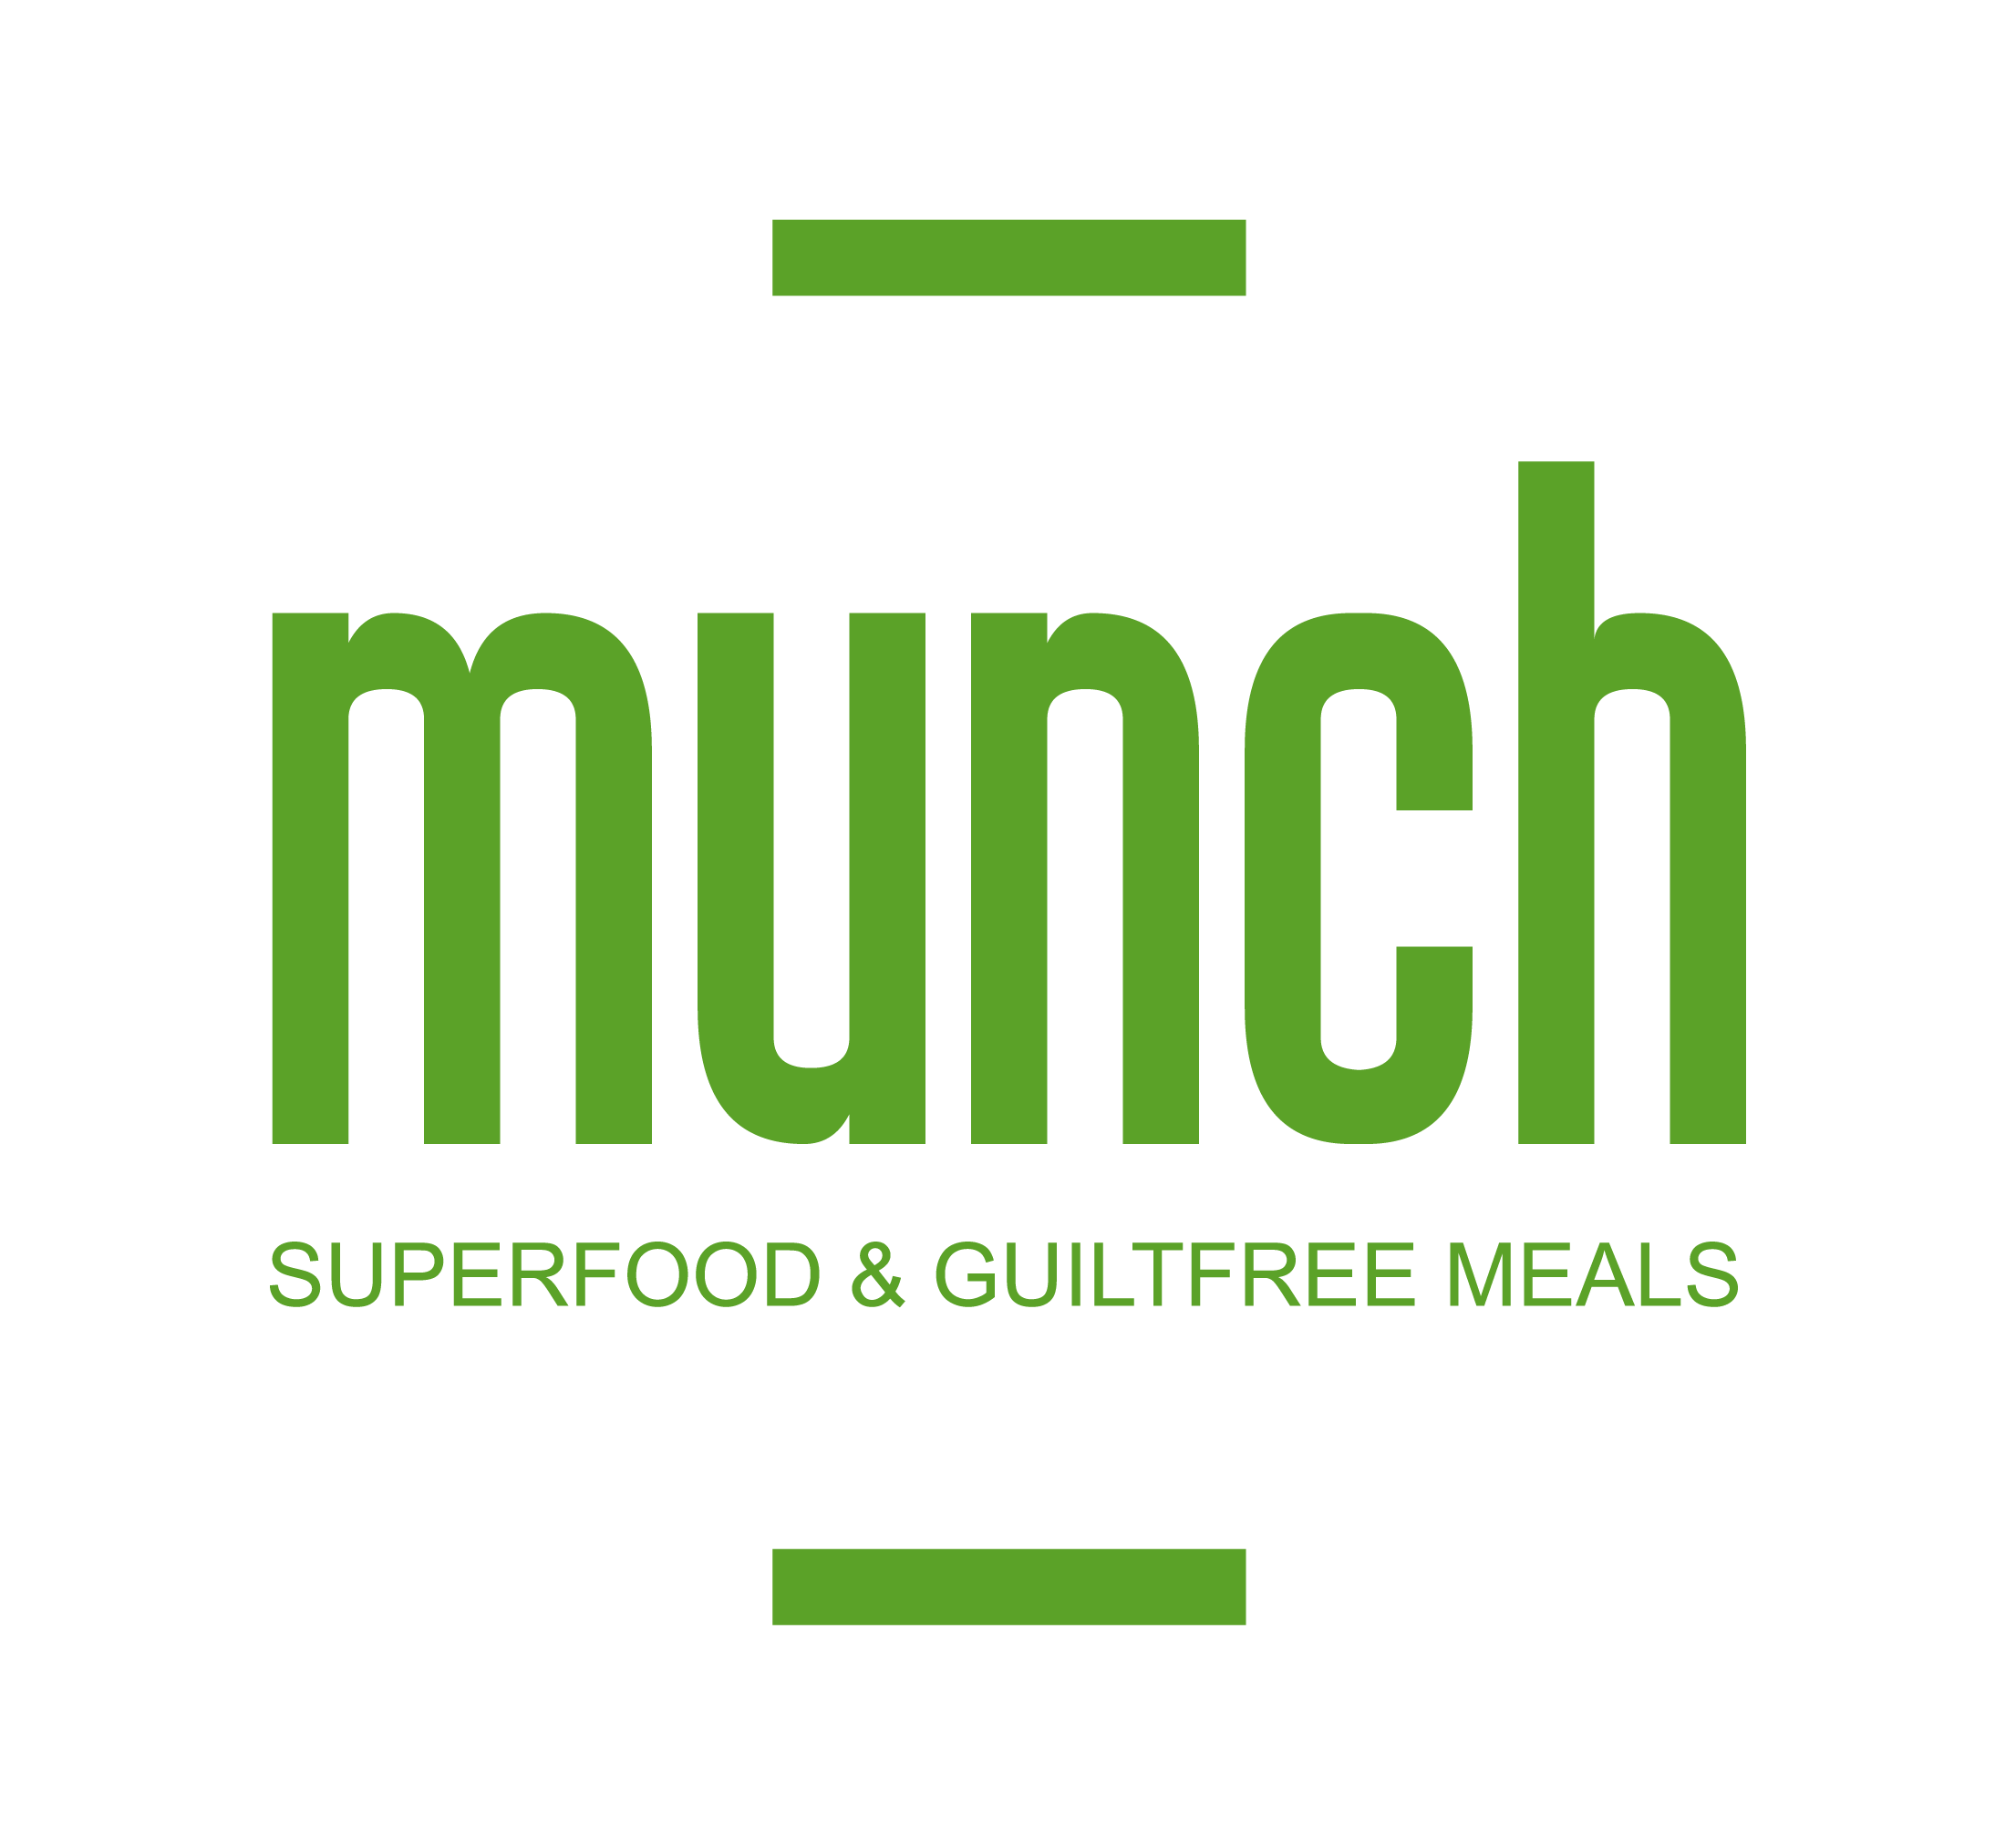 Munch superfood